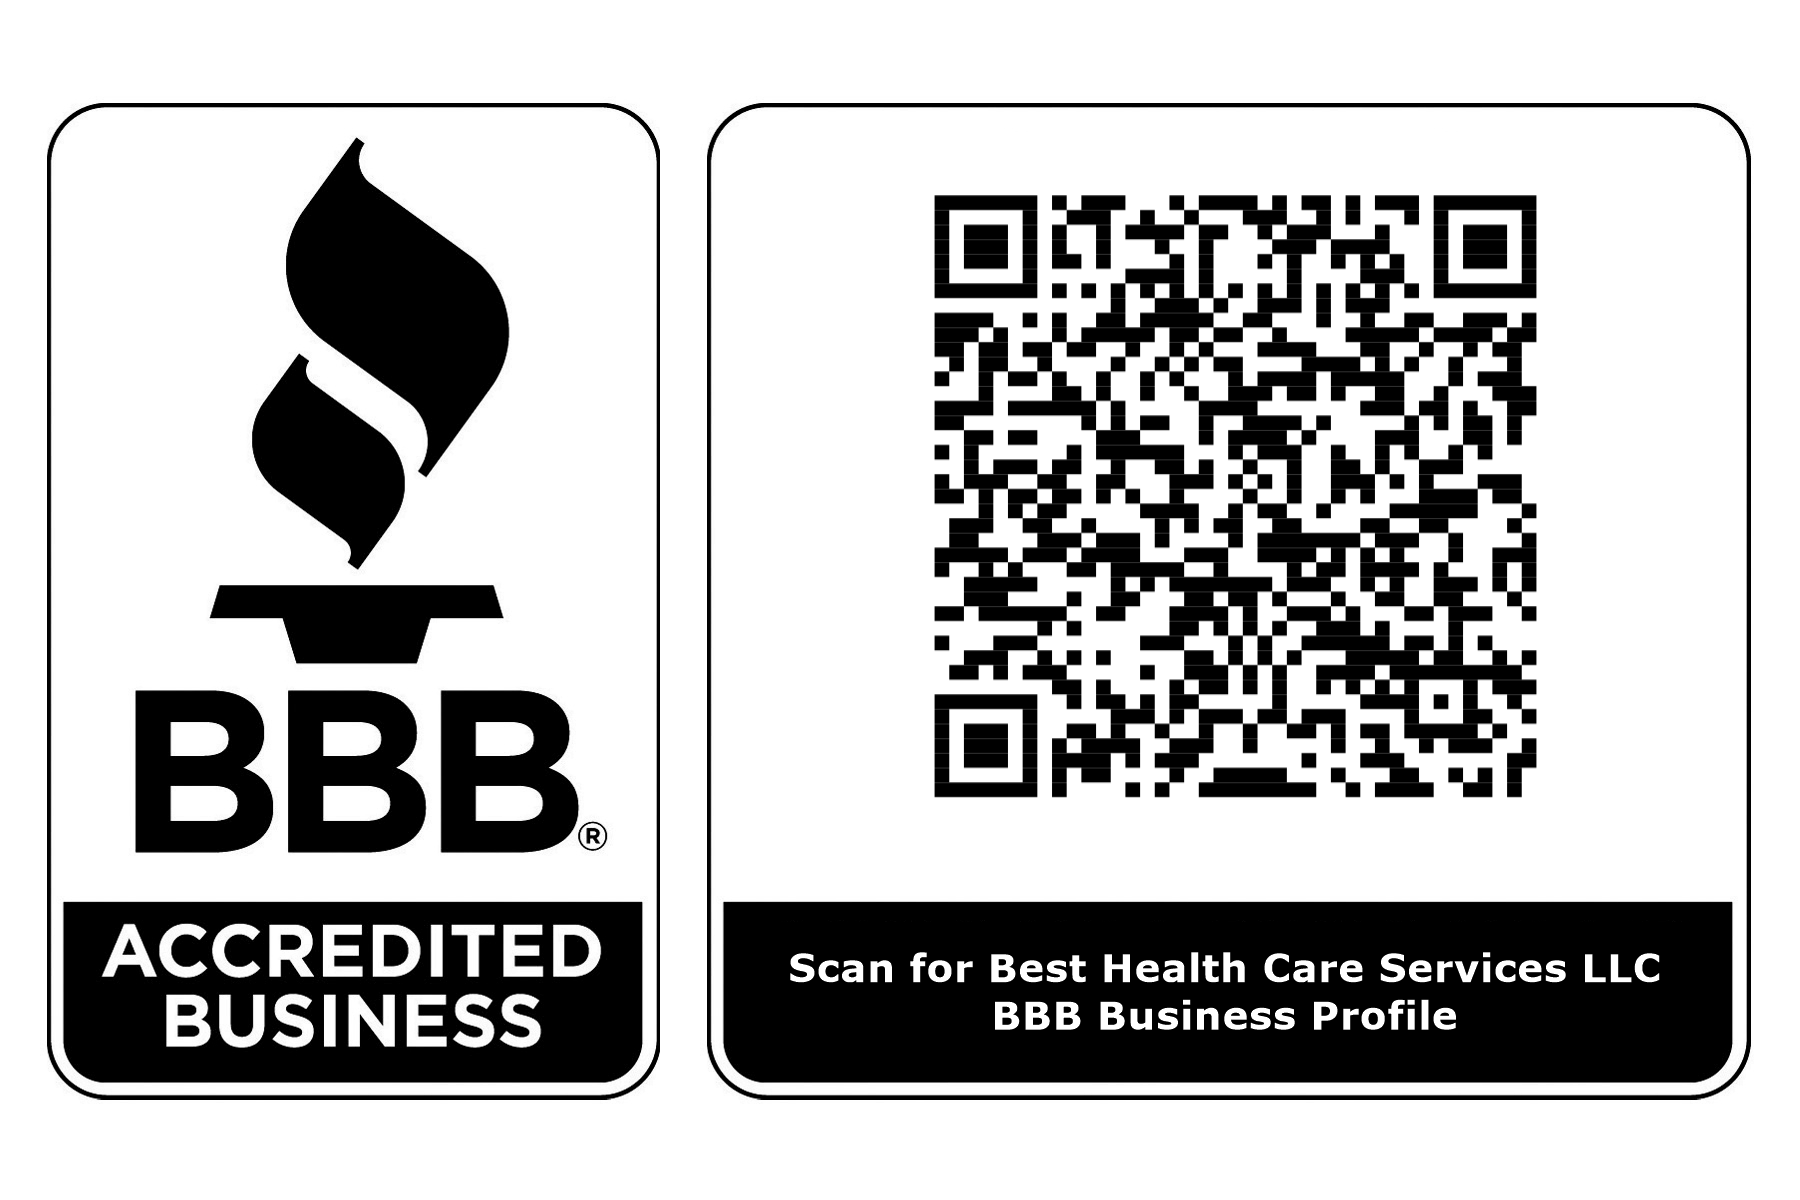 BBB Accredited Business QR Code